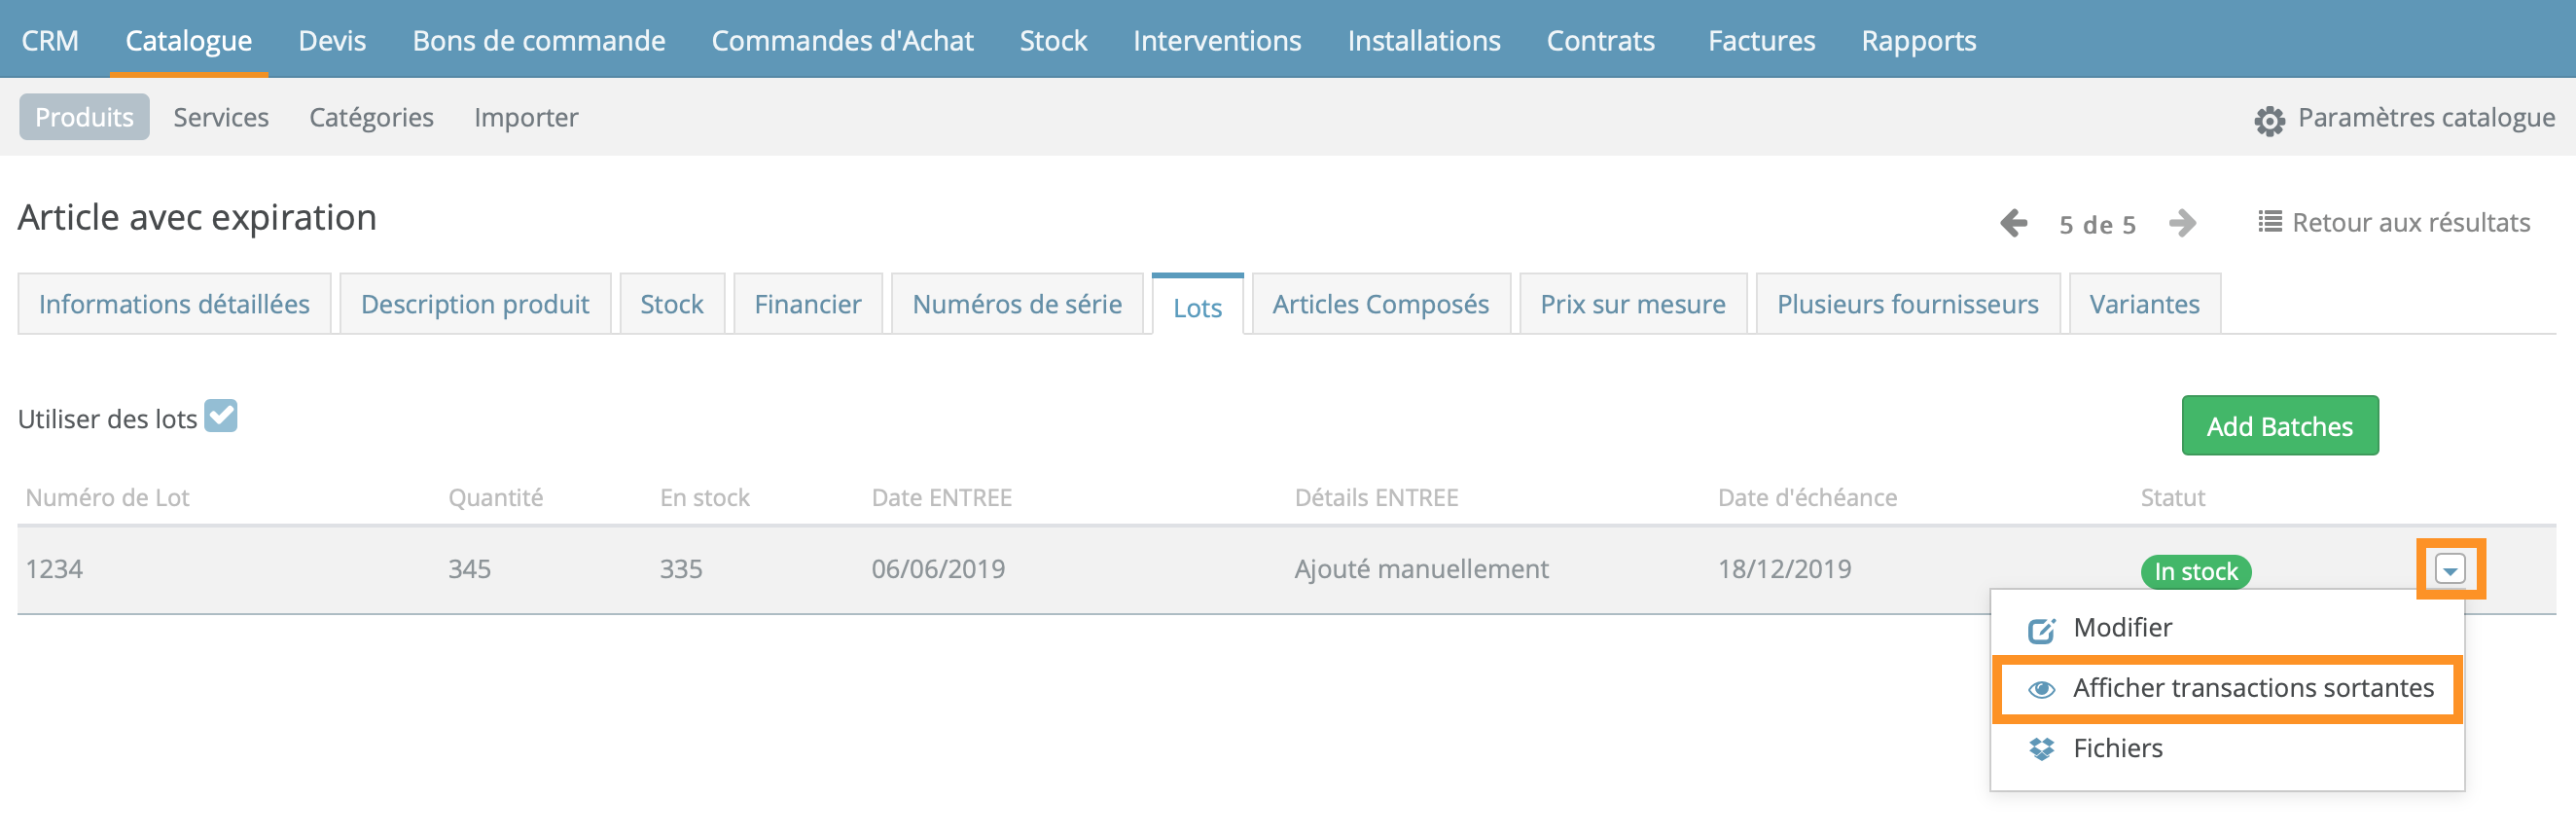 Akti-Catalogue-Lot_afficher_transaction_sortantes.png